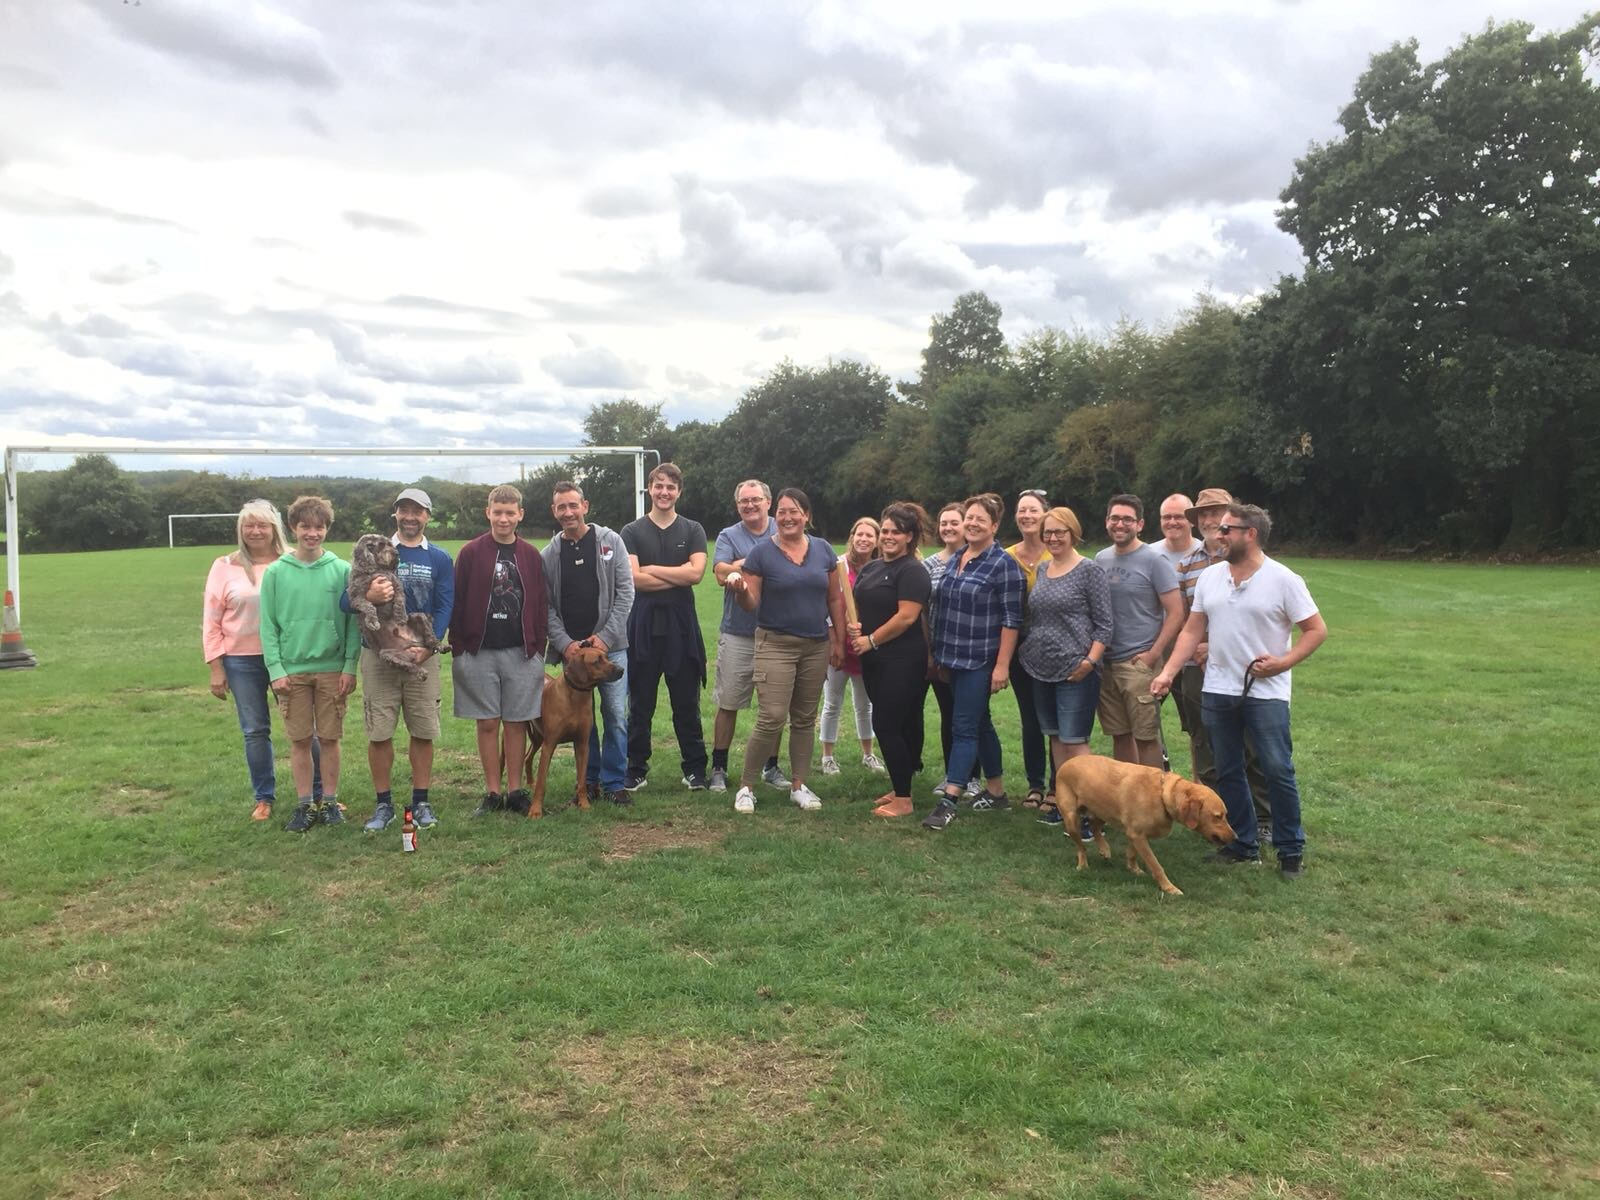 The Rounders team